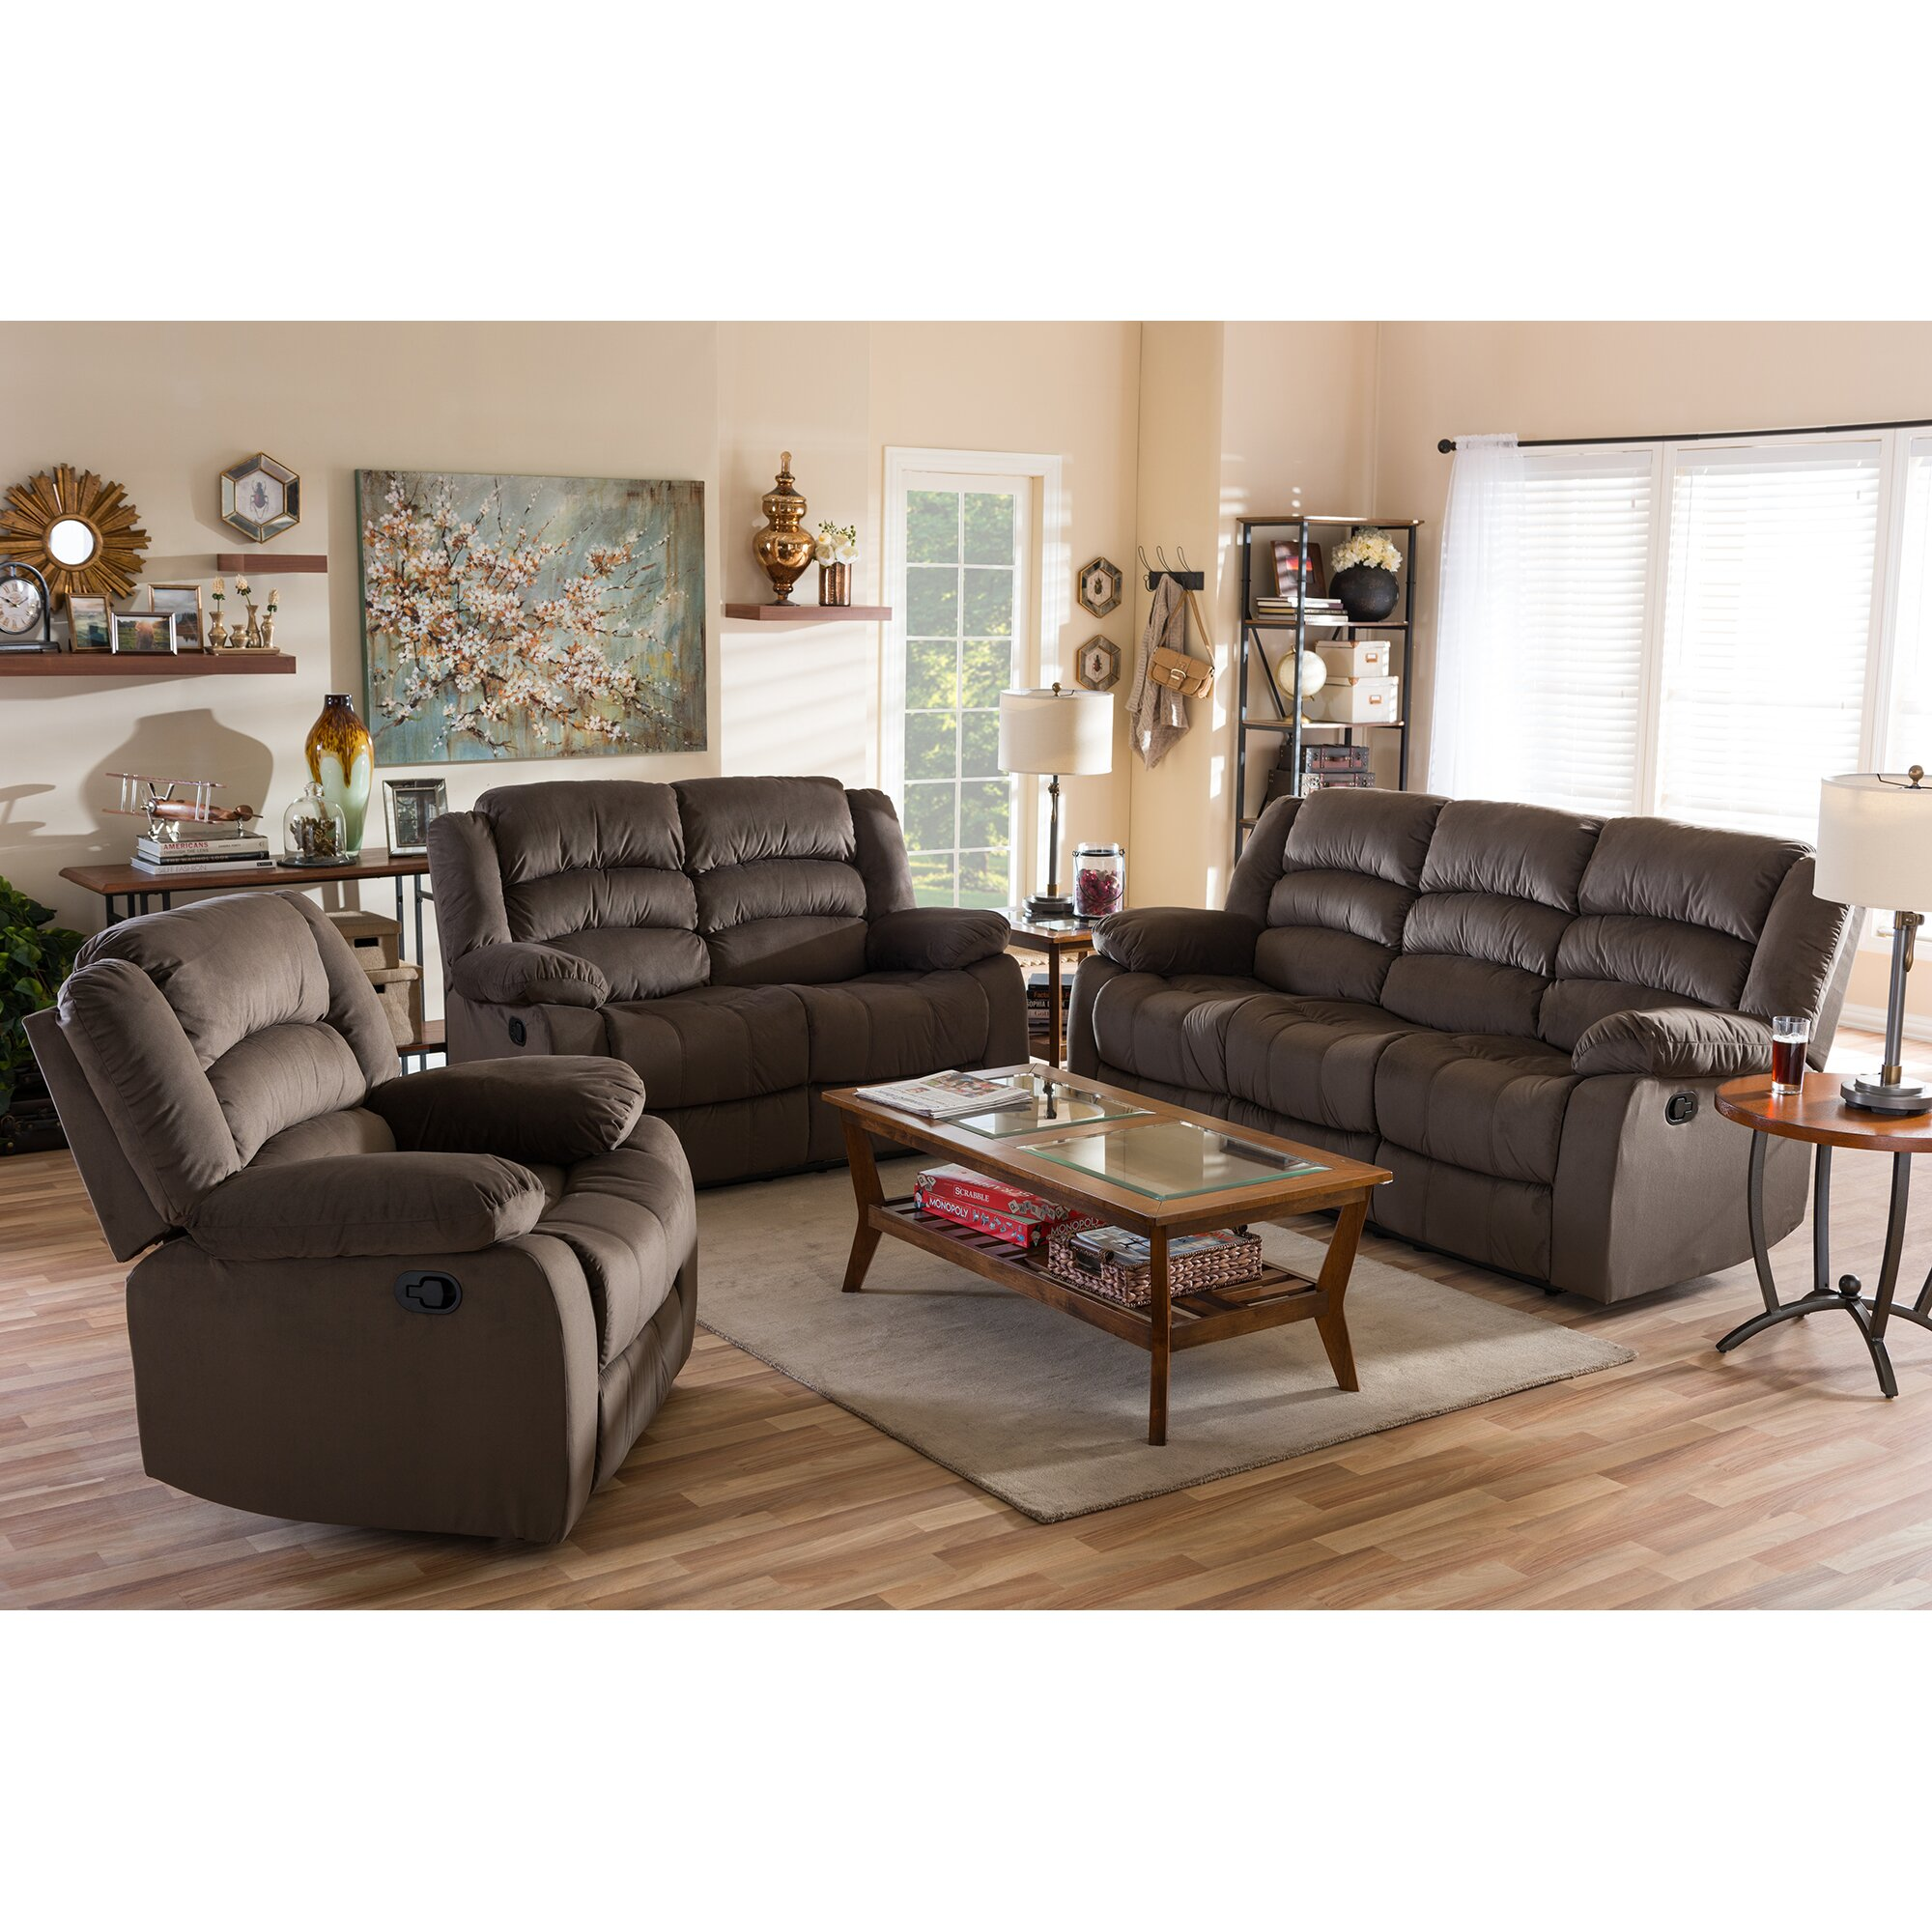 Living room sets wayfair Living room furniture sets studio